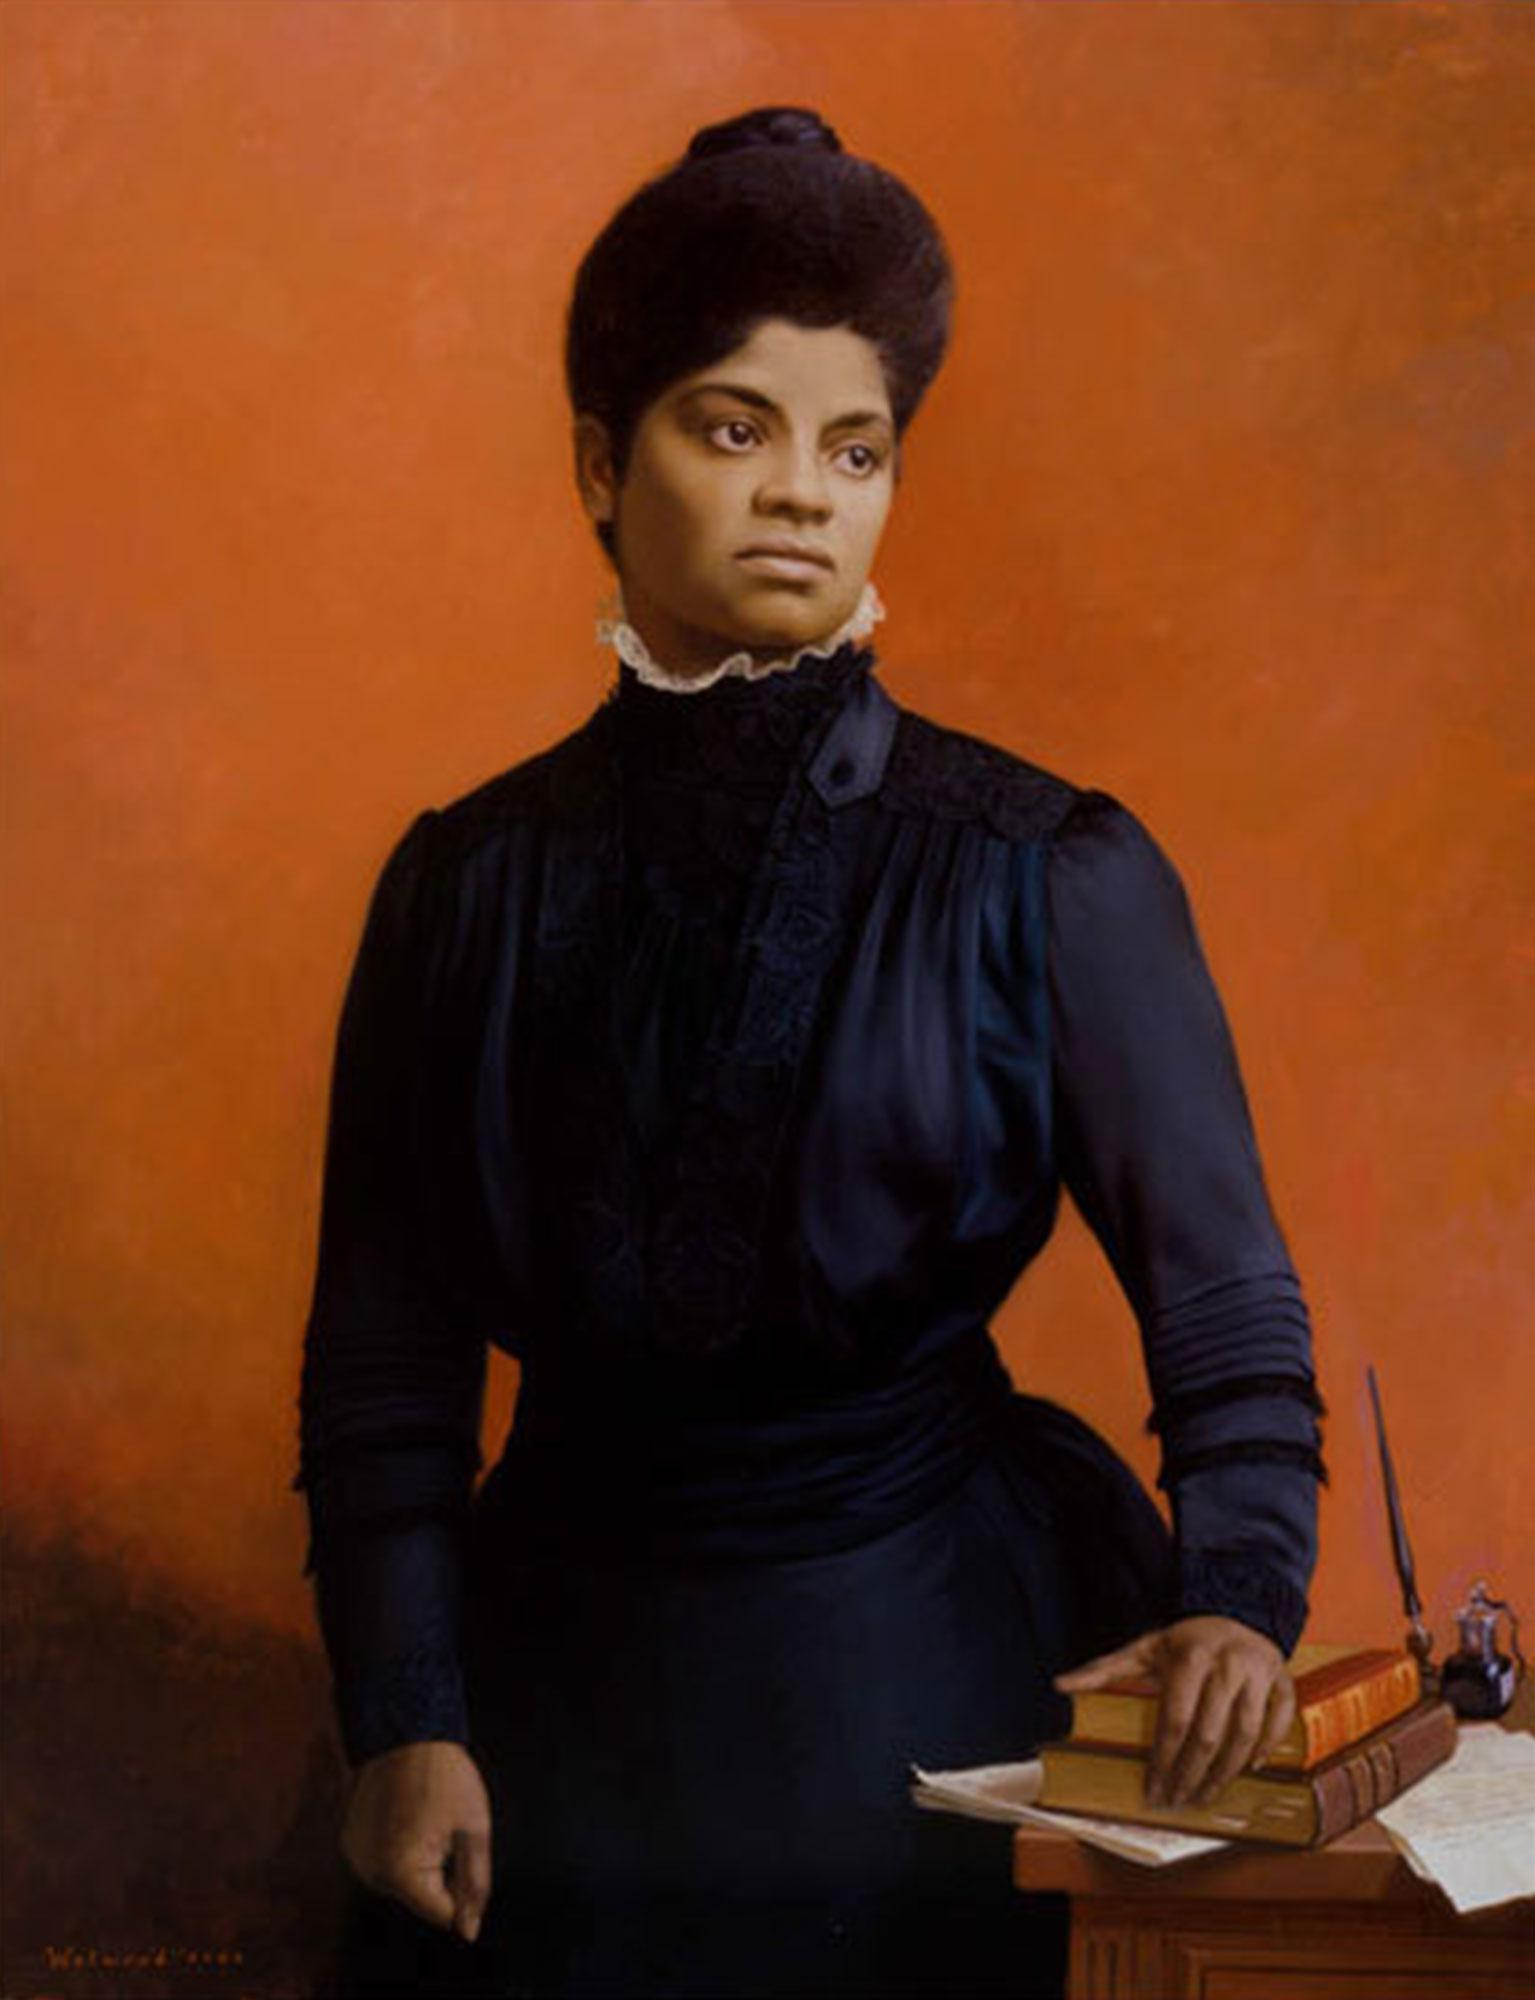 an overview of the life of ida b wells barnett Ida b wells, a crusading african early life of ida b wells personal life of ida b wells in 1895 wells married ferdinand barnett.